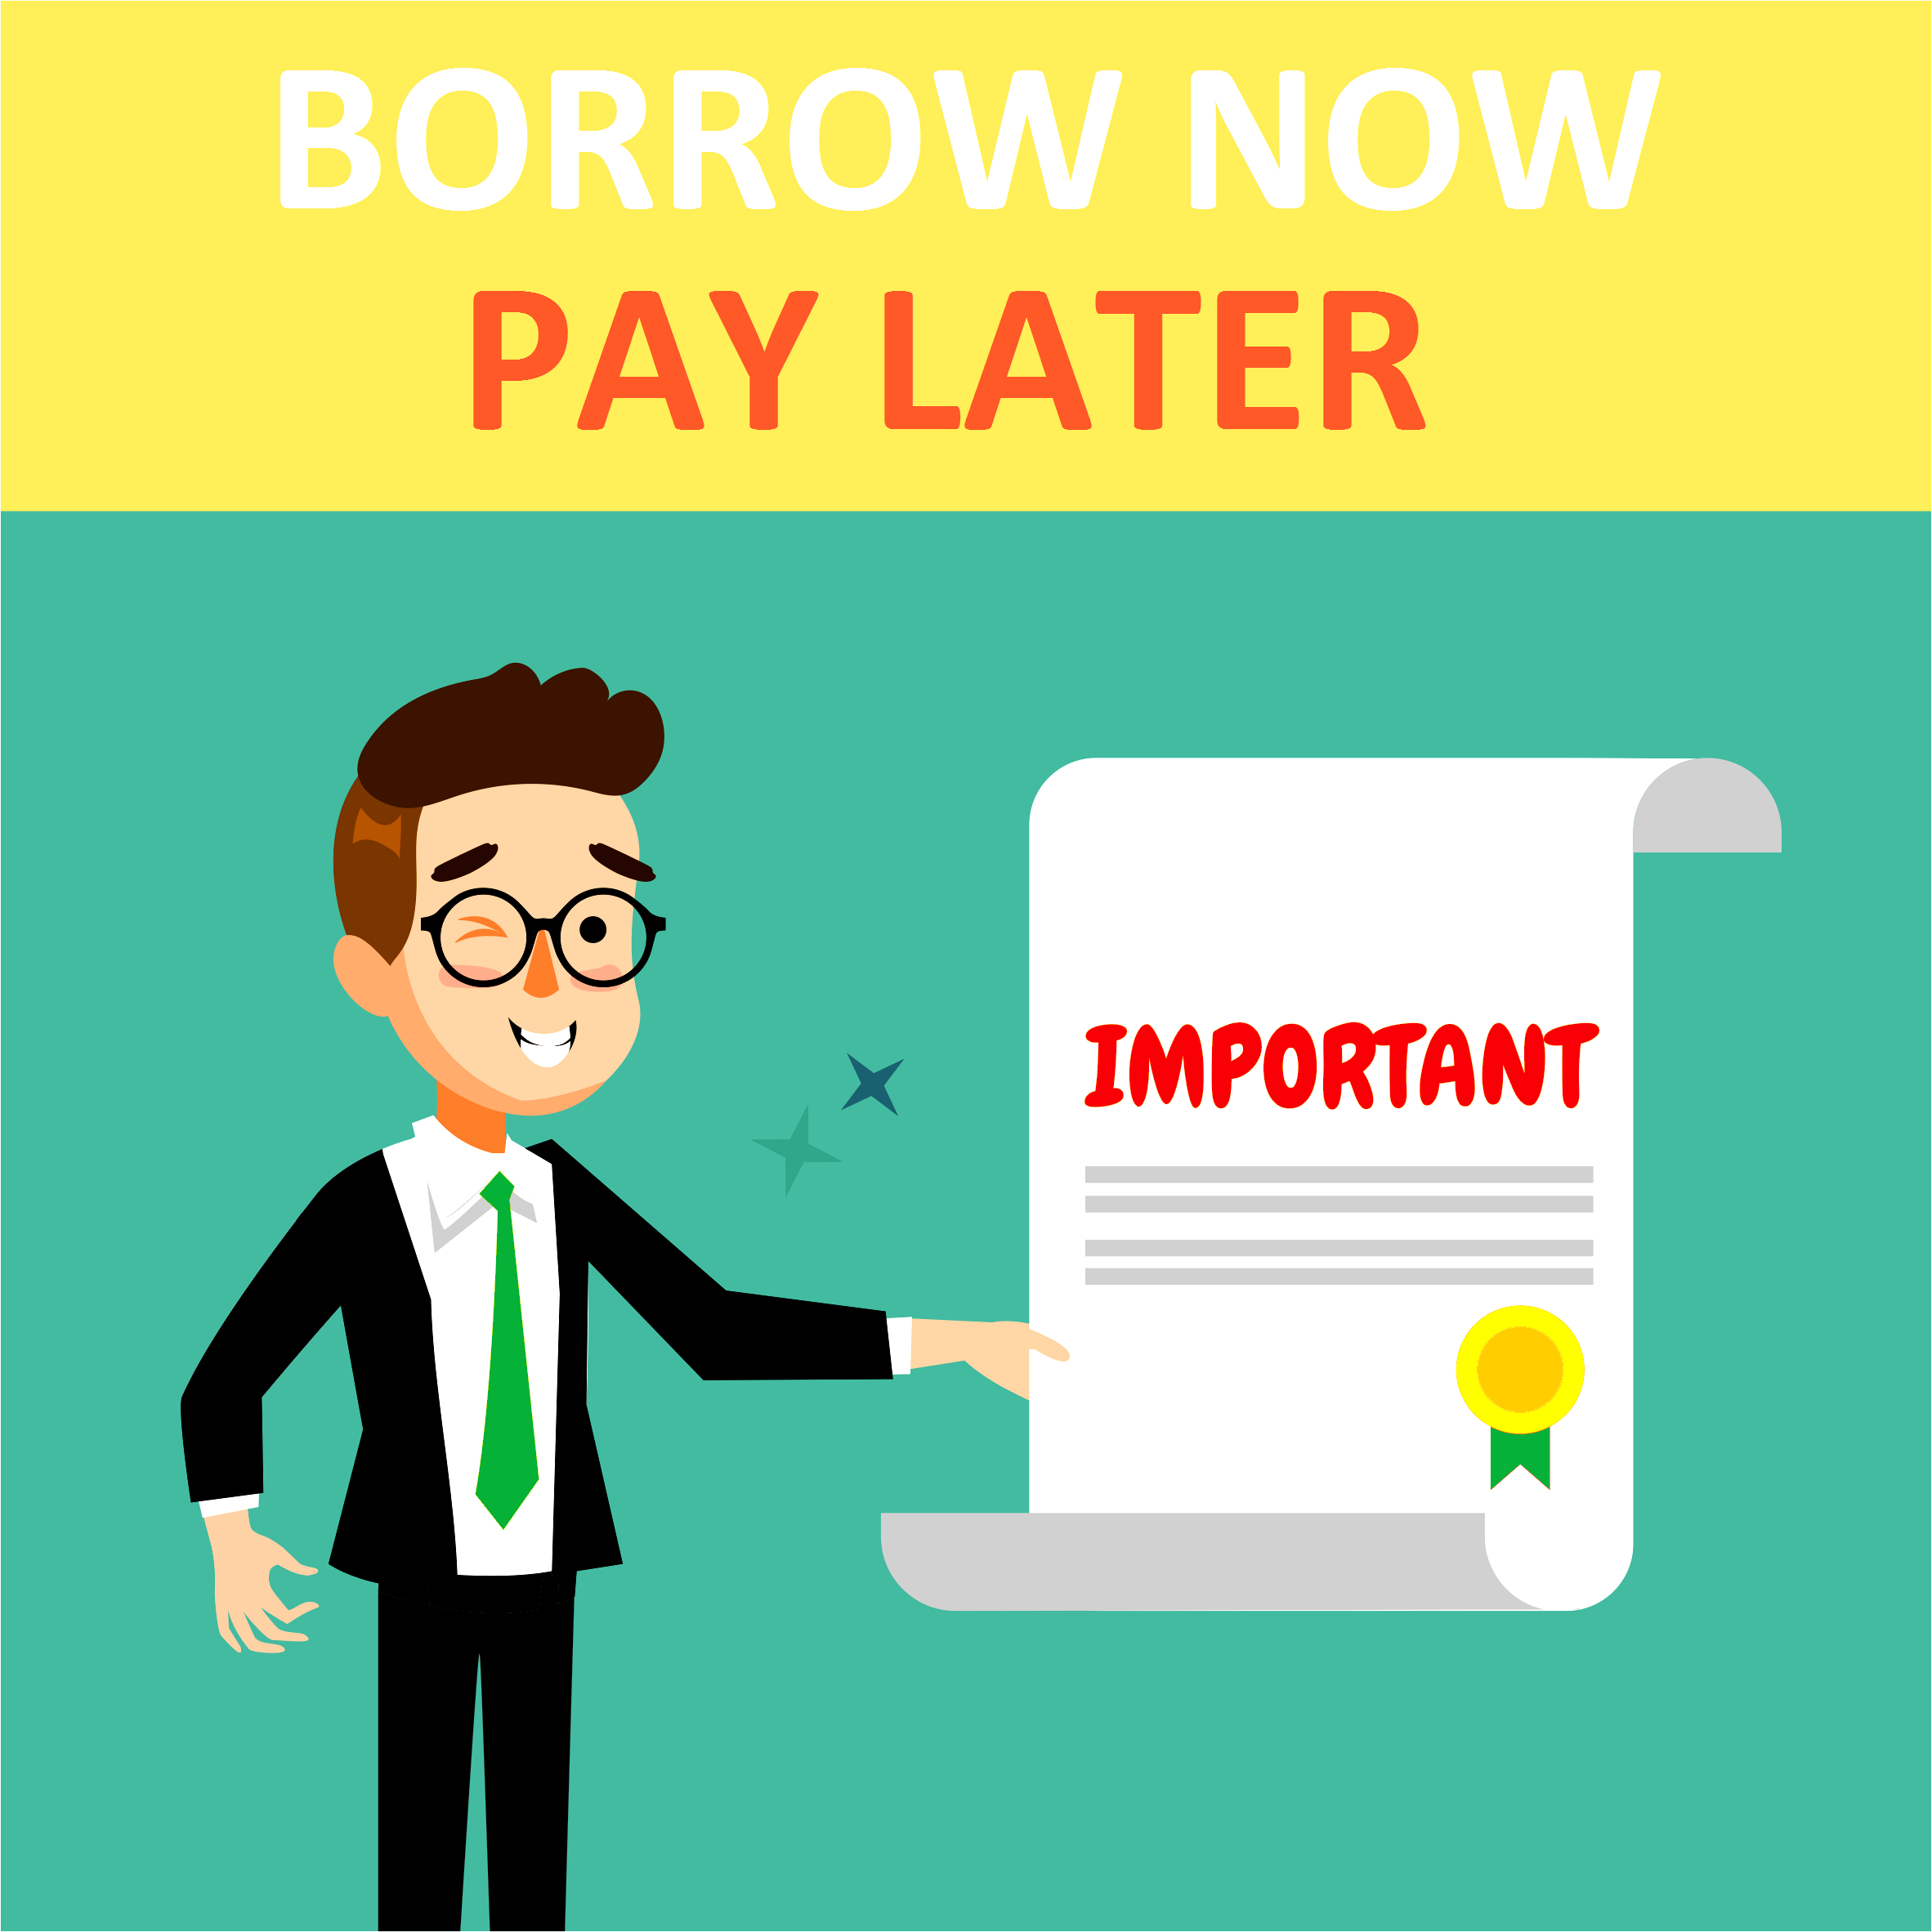 Borrow Now. Pay Later